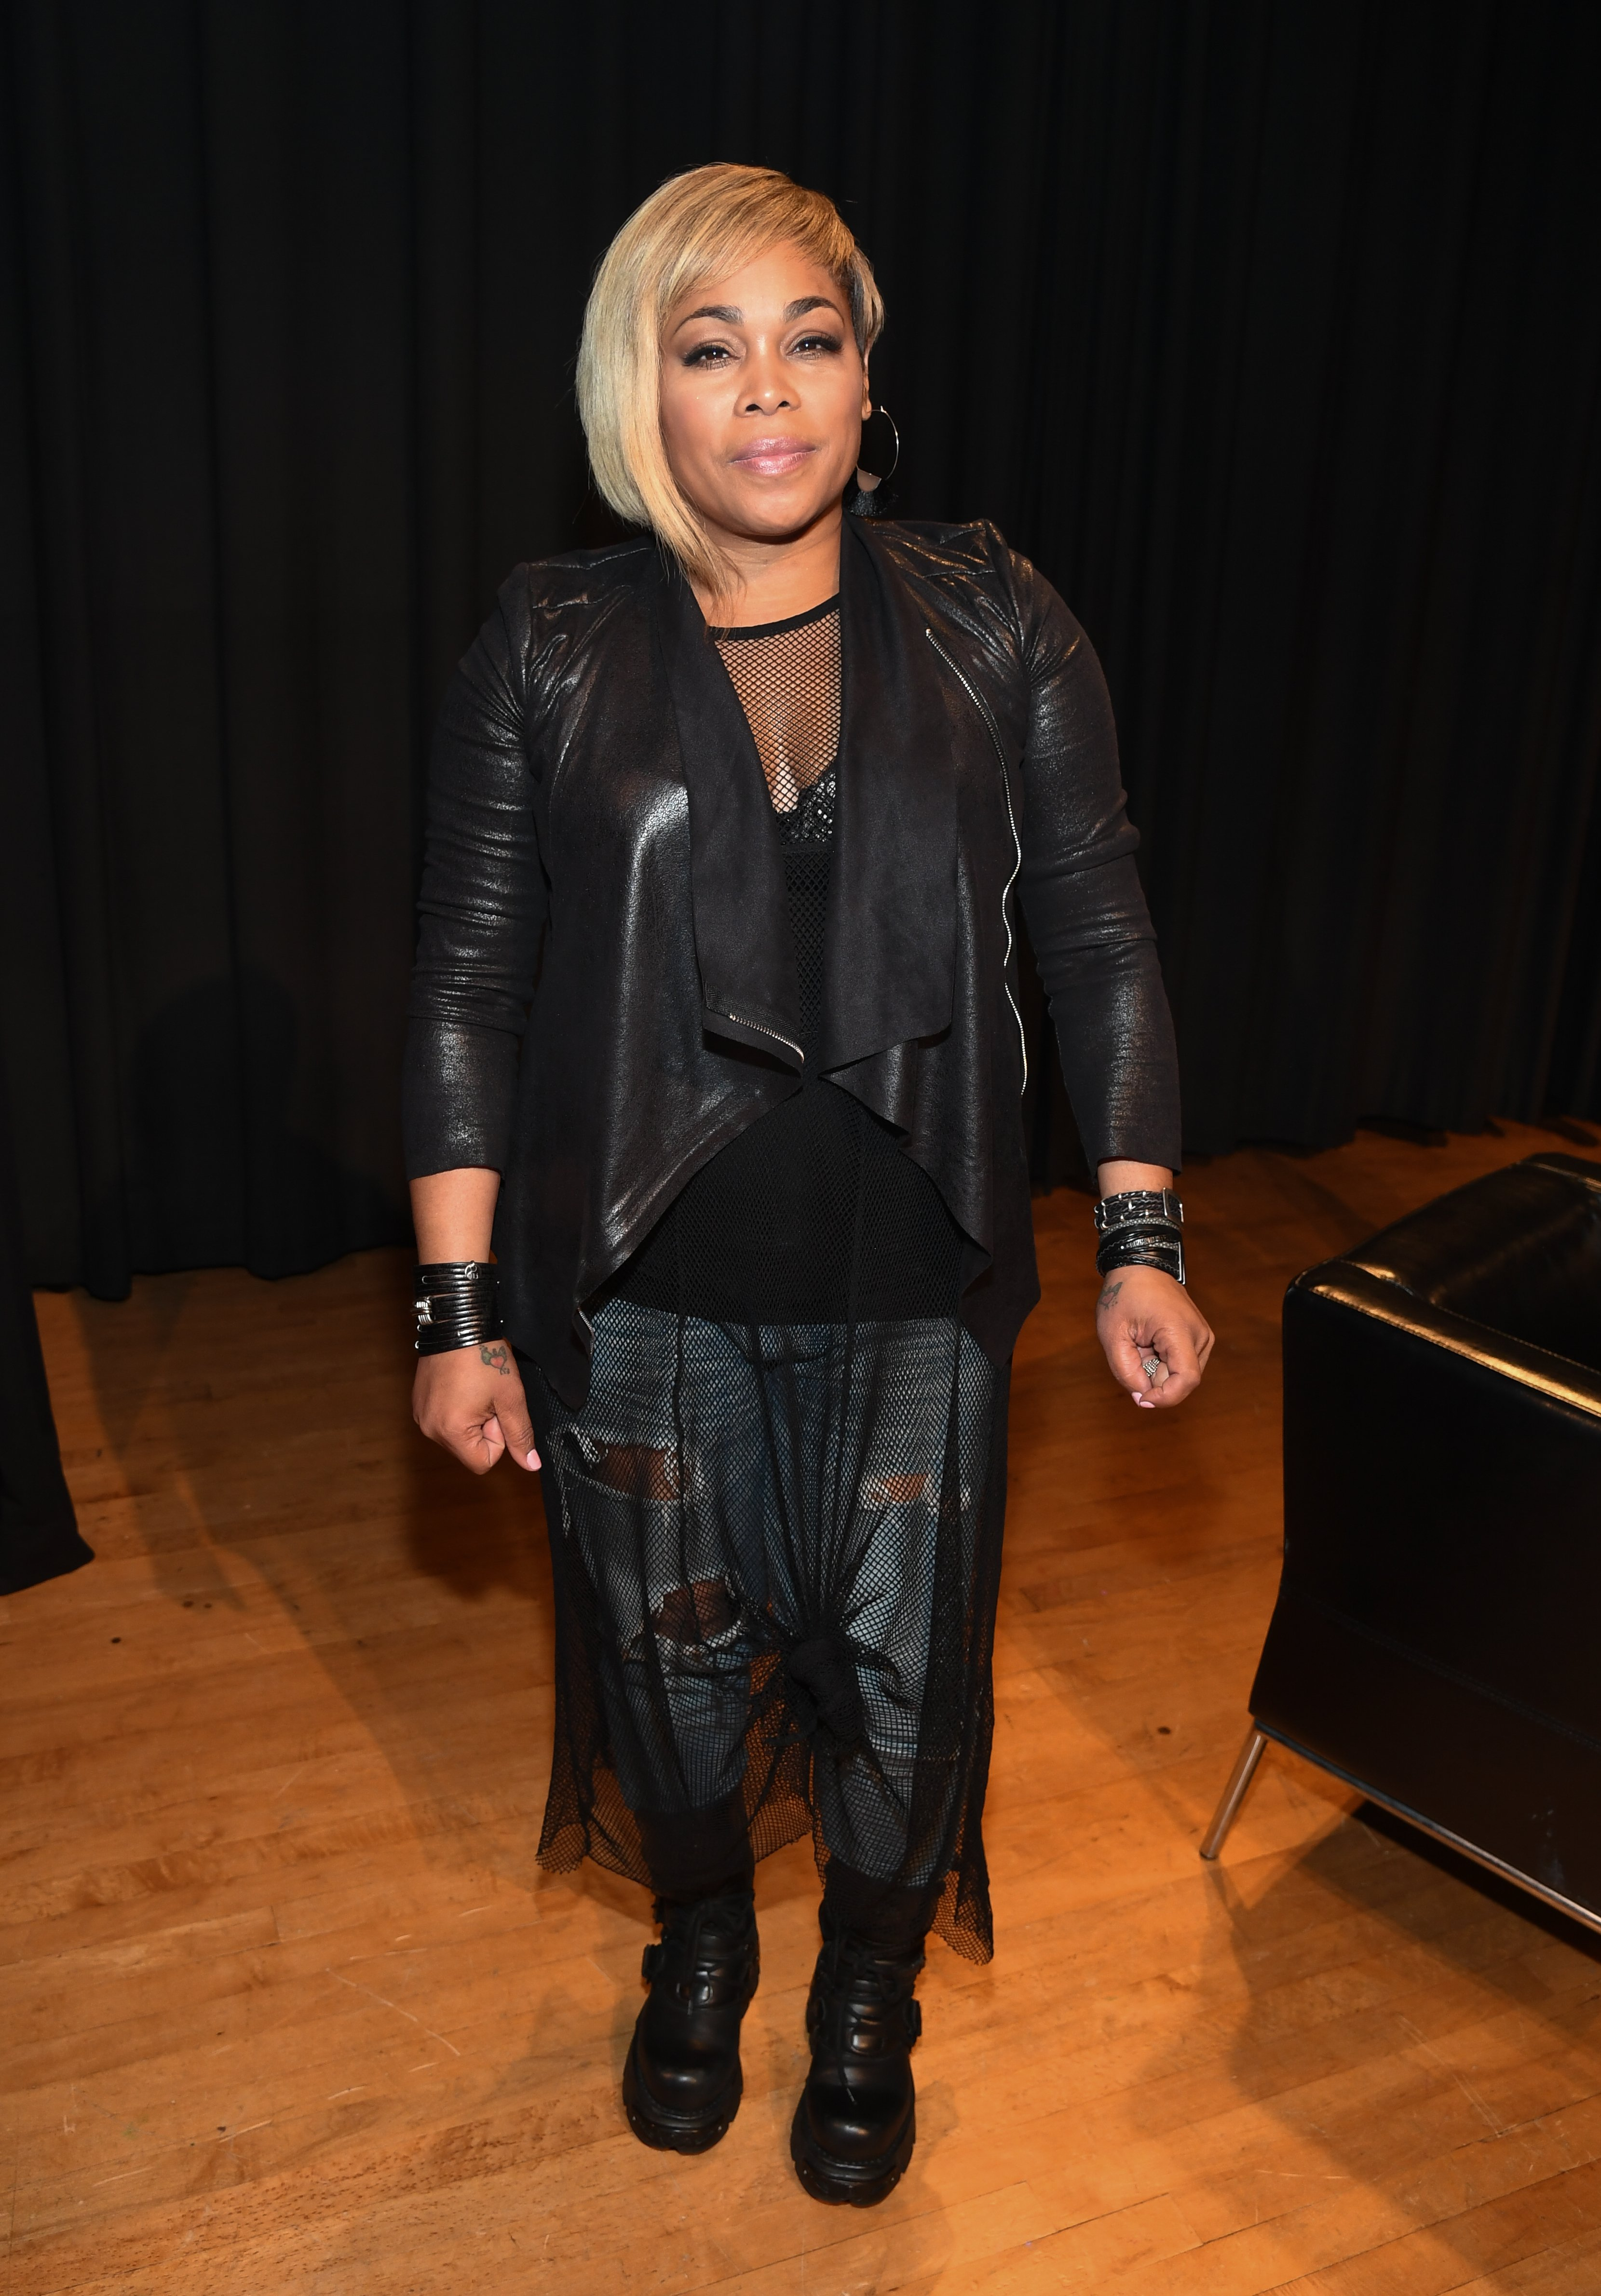 T-Boz on October 9, 2017 in Atlanta, Georgia | Source: Getty Images